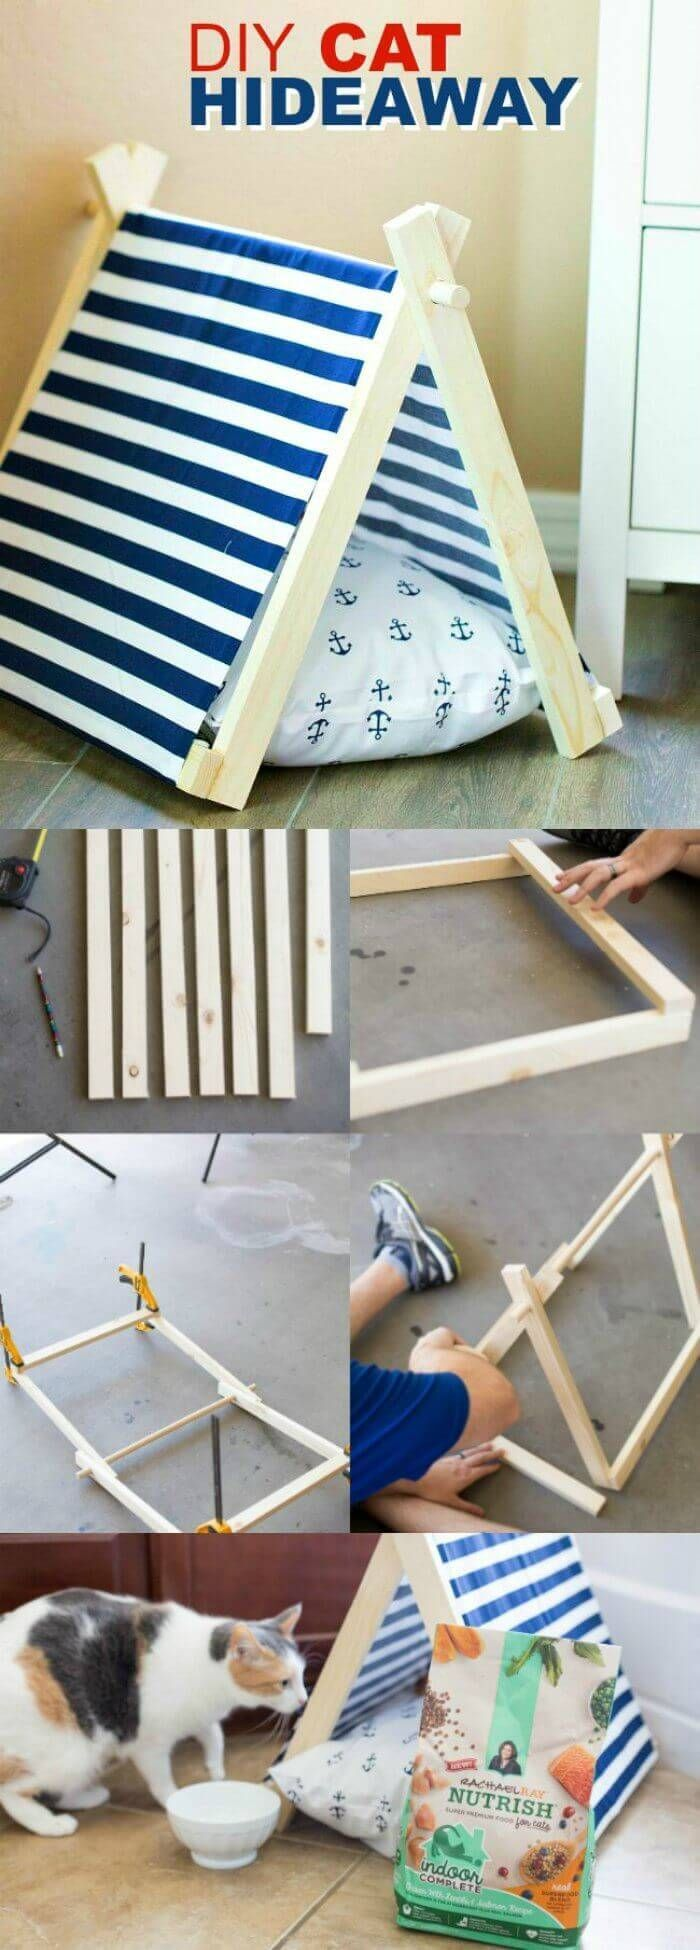 DIY Cat Hideaway via @spaceshipslb